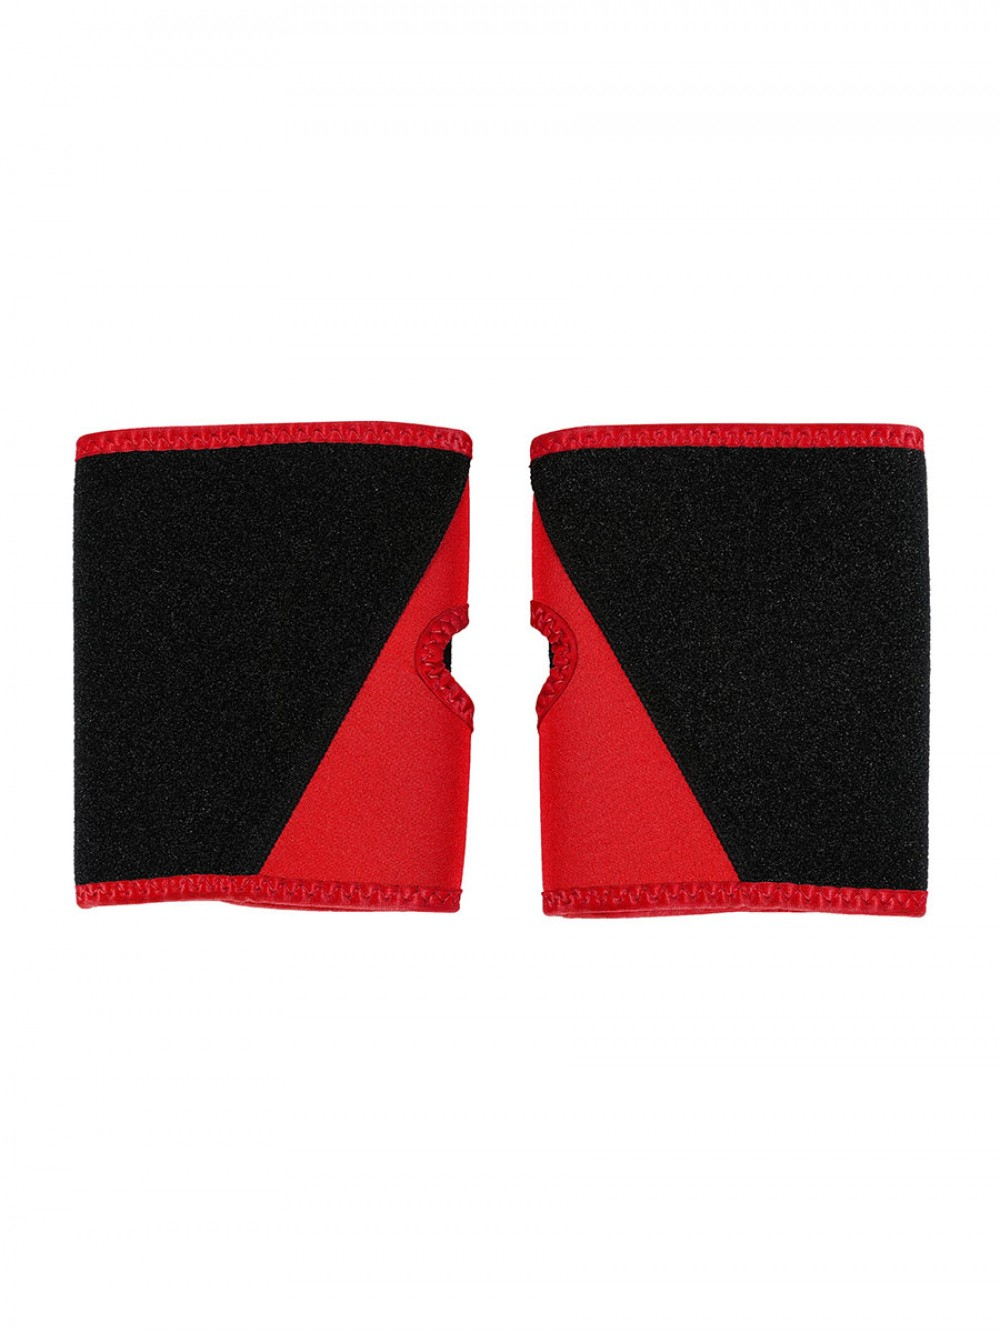 Red 2Pcs Colorblock Neoprene Arm Trimmers For Weight Loss